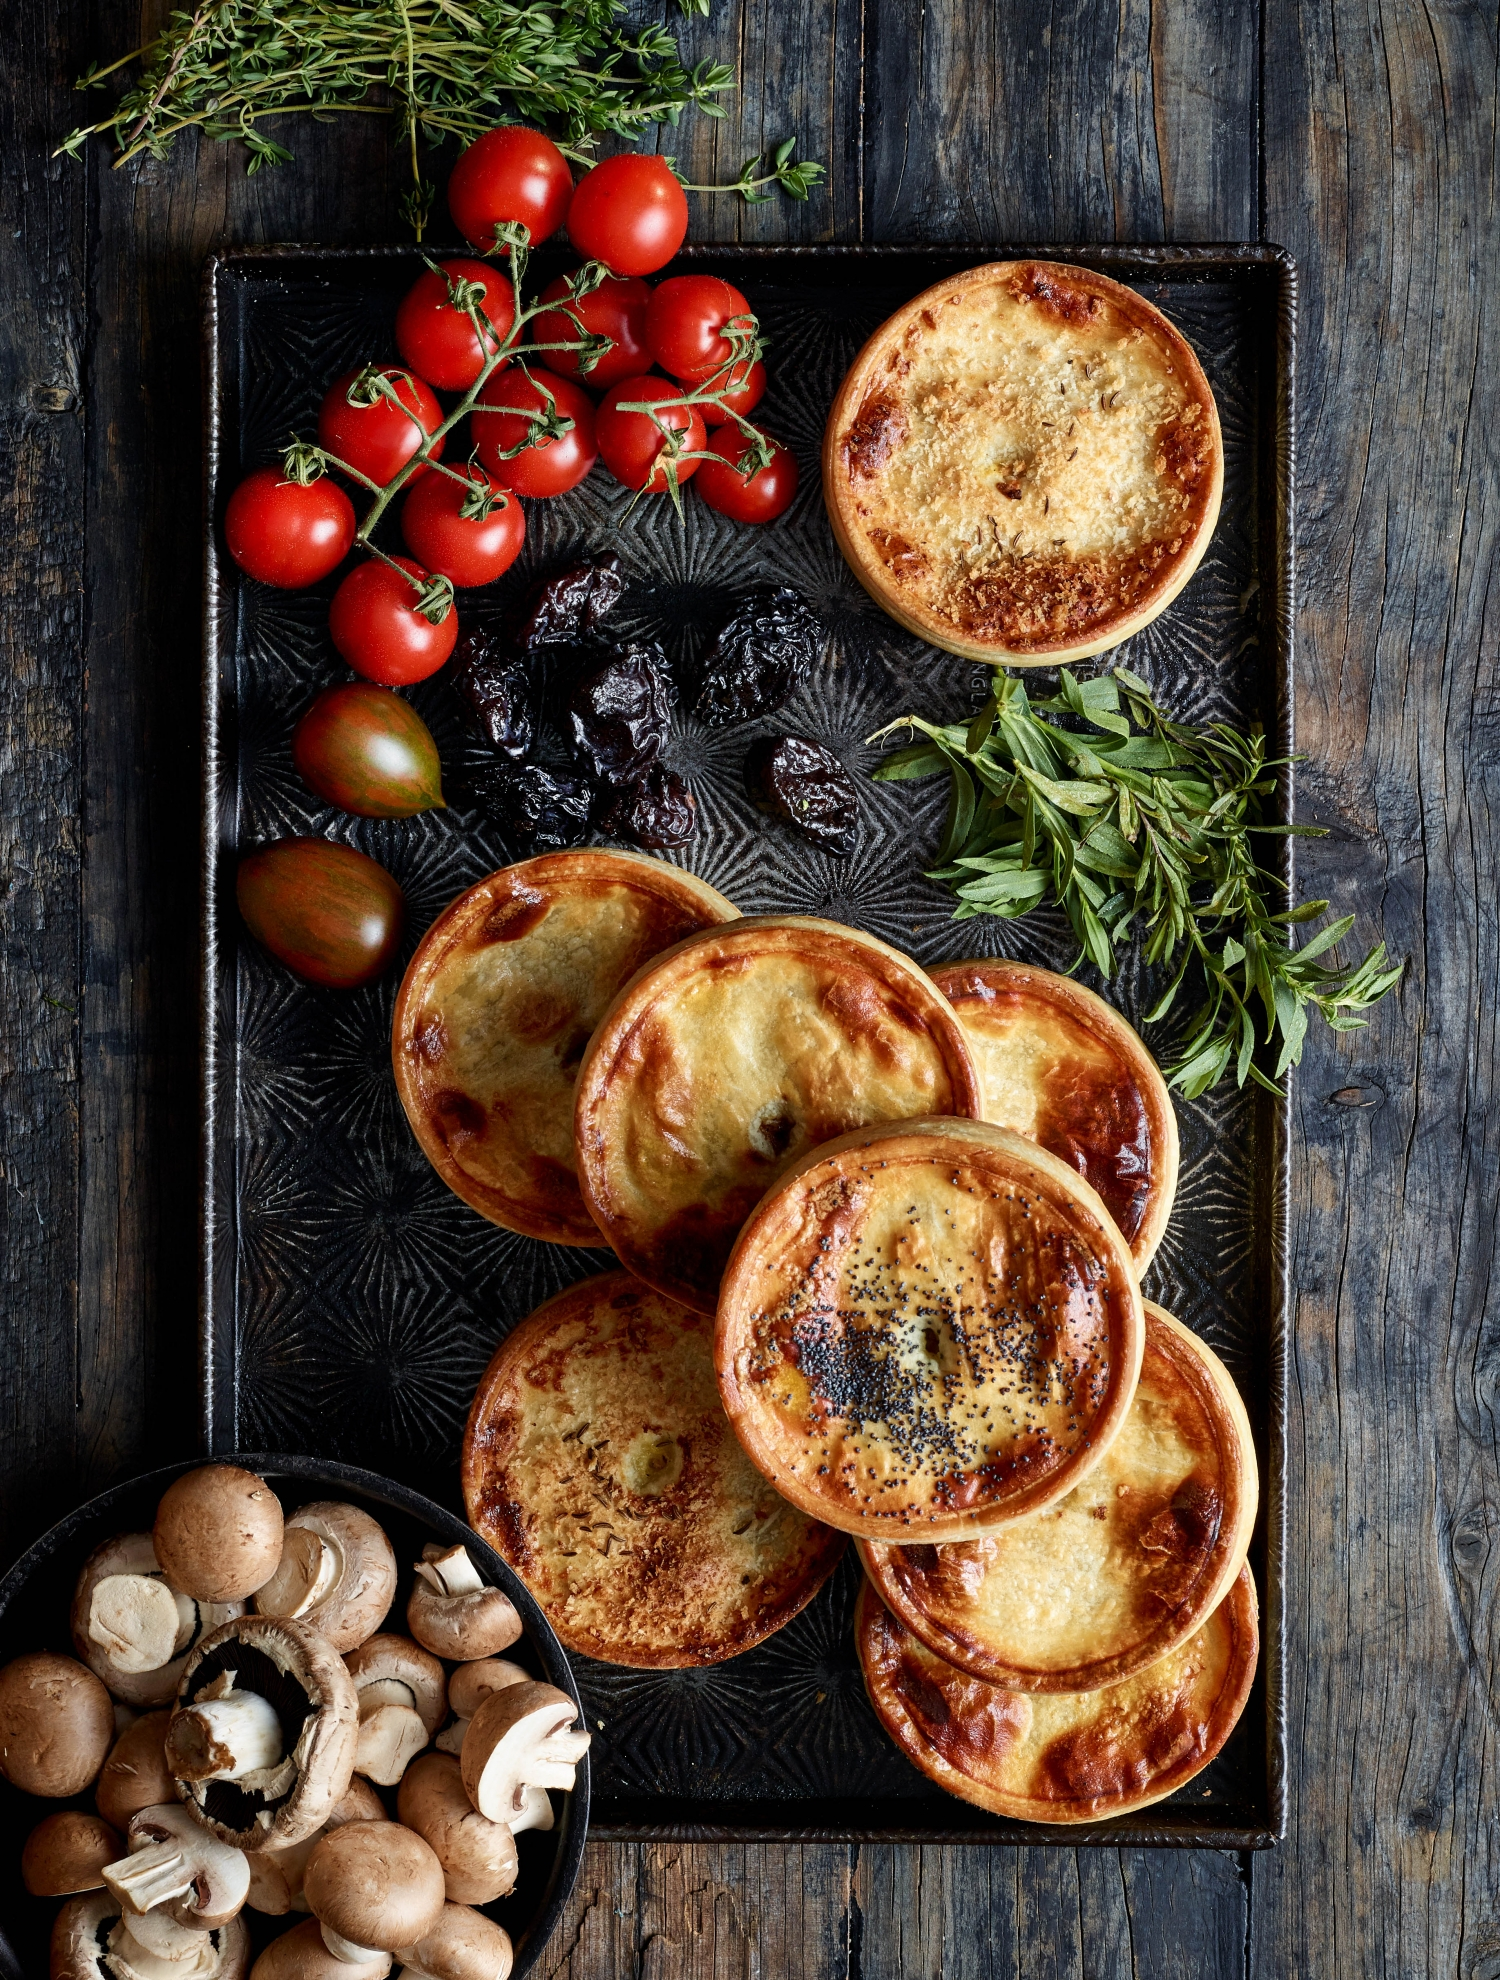 Rectangular food platter with selection of pies and fresh produce.